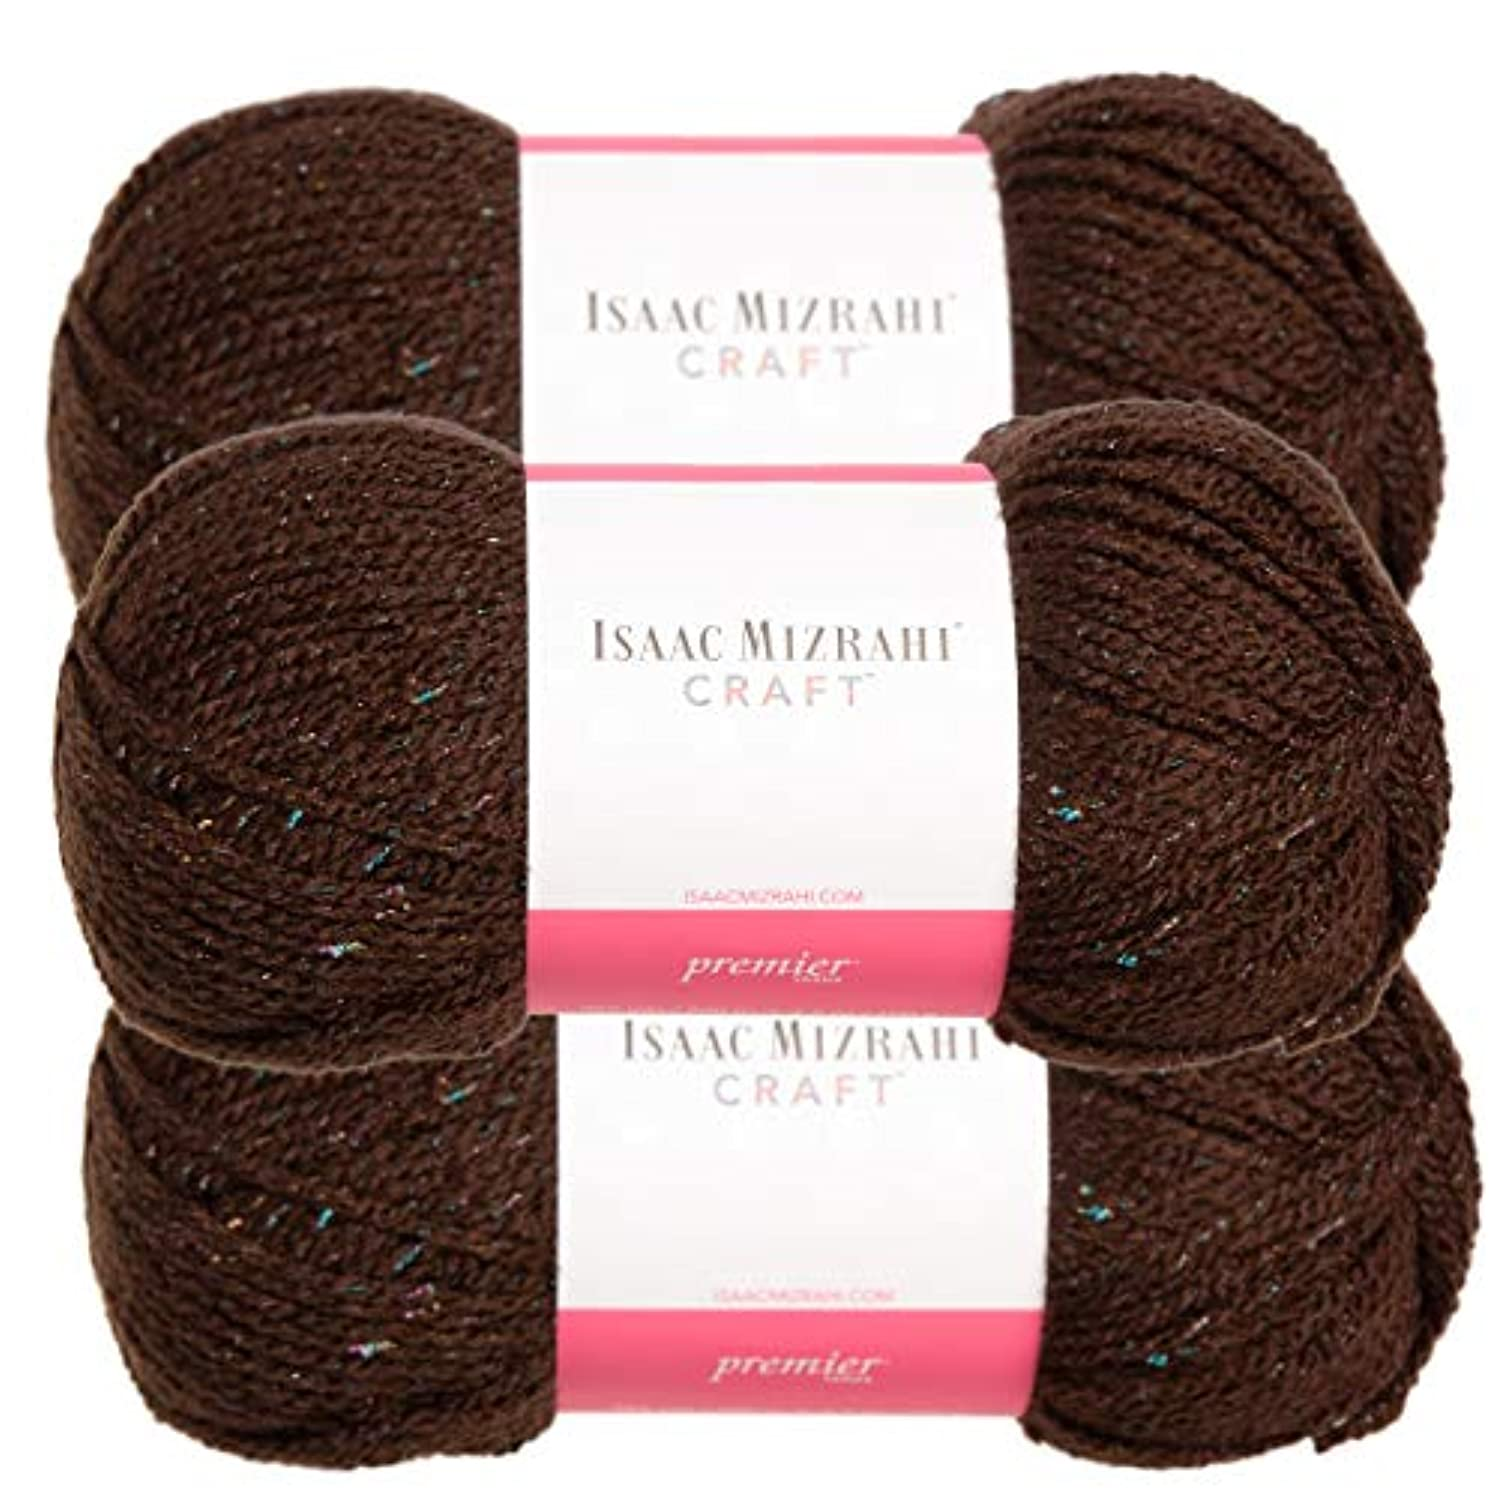 Premium Yarns (3 Pack Isaac Mizrahi Broadway Acrylic Soft Palace Brown Yarn for Knitting Crocheting #4 Medium